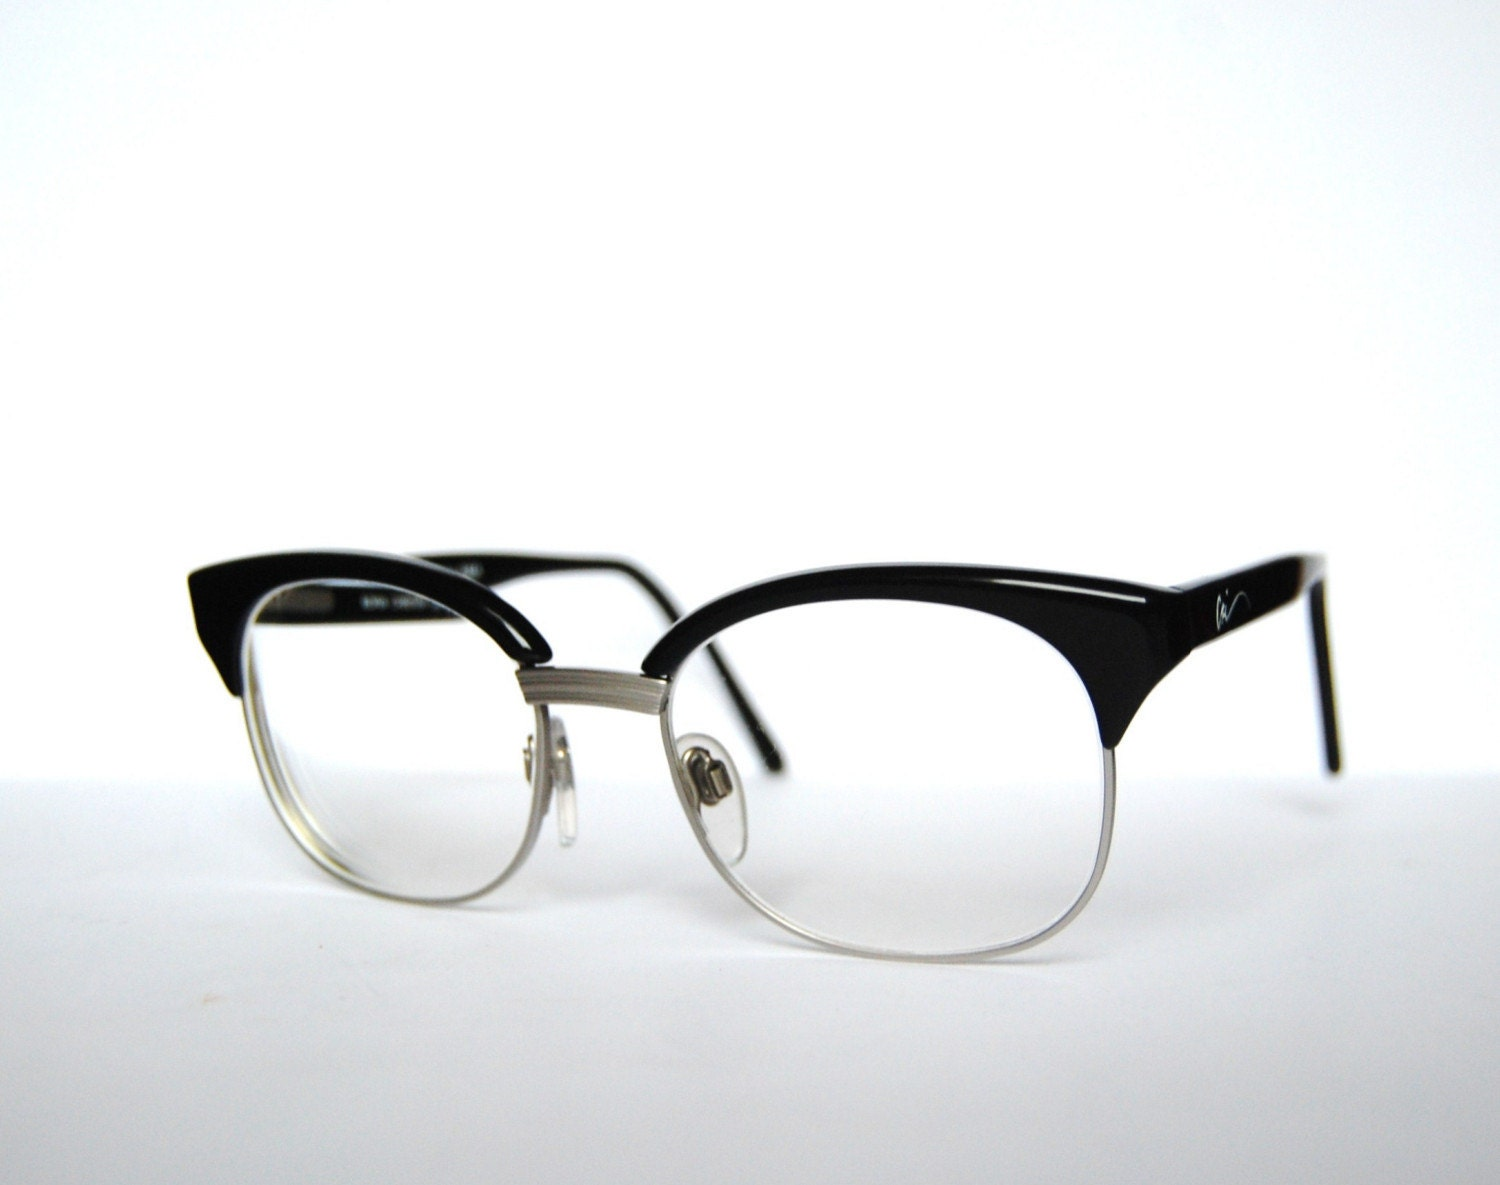 Glasses Frames Germany : Vintage rare eyeglasses Ilona Christen by AMA from Germany